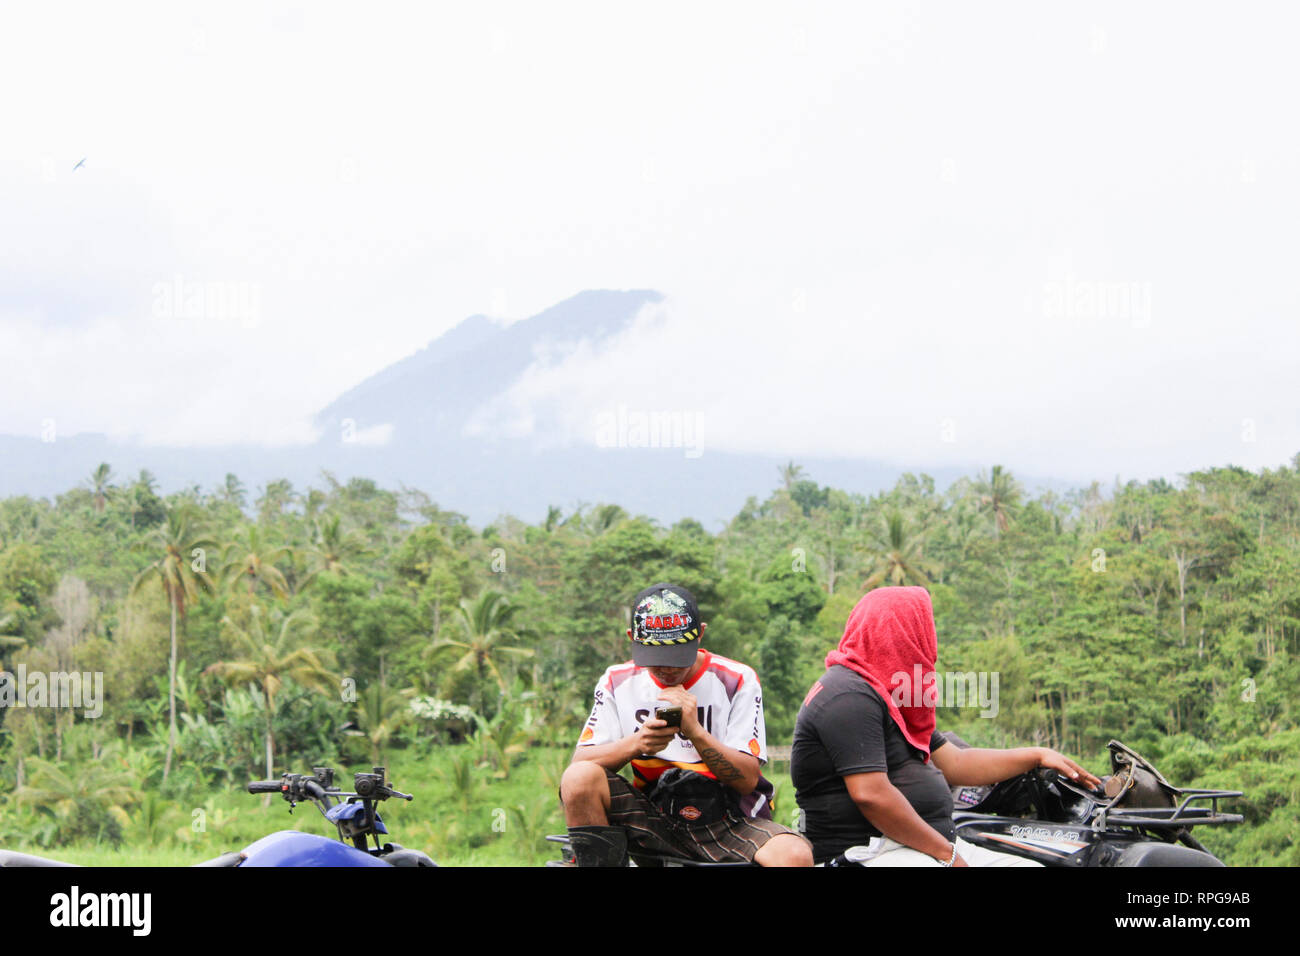 Two tour guides take a break from our quadbike tour. Ubud, Bali, Indonesia. - Stock Image